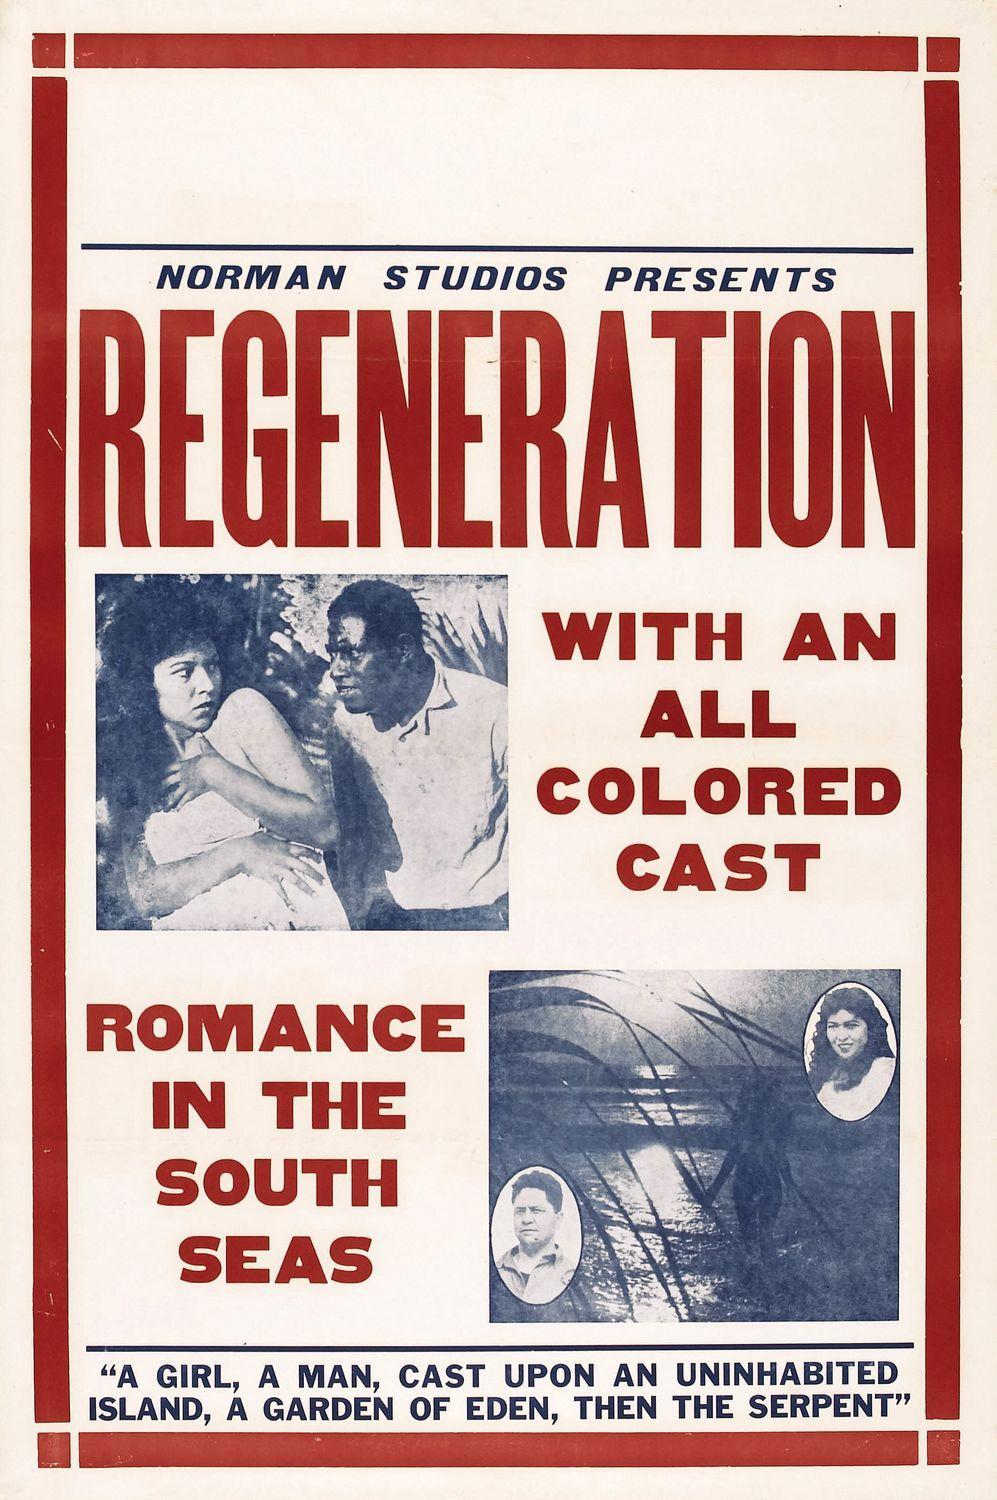 Regeneration (1923) - classic cult old film poster